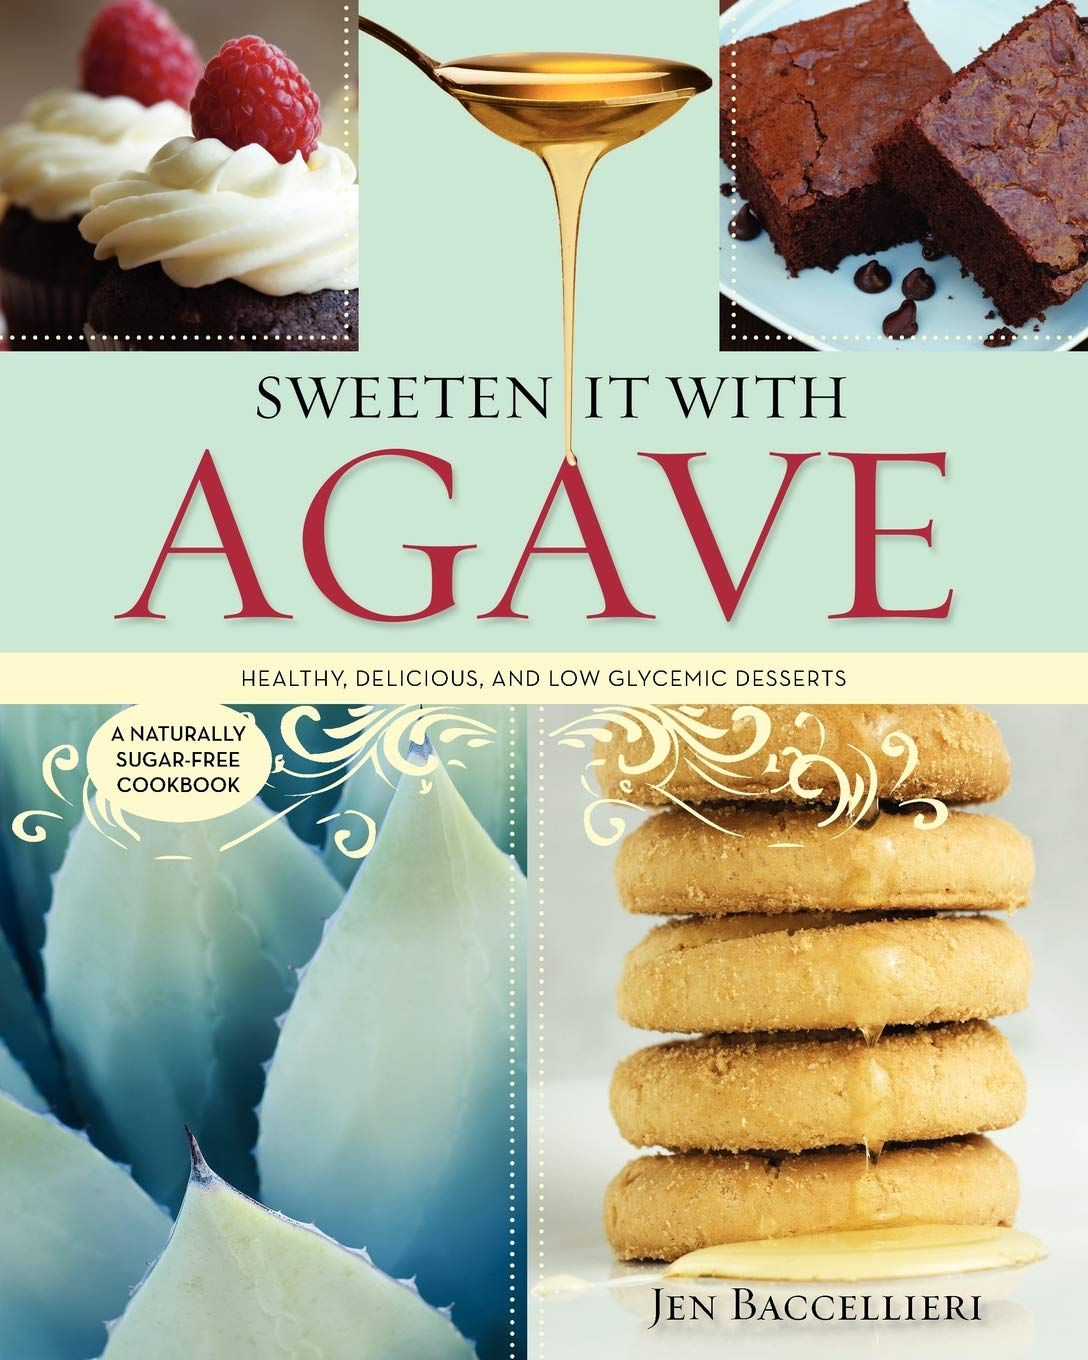 Sweeten It With Agave: Over 350 Healthy, Delicious, and Low Glycemic